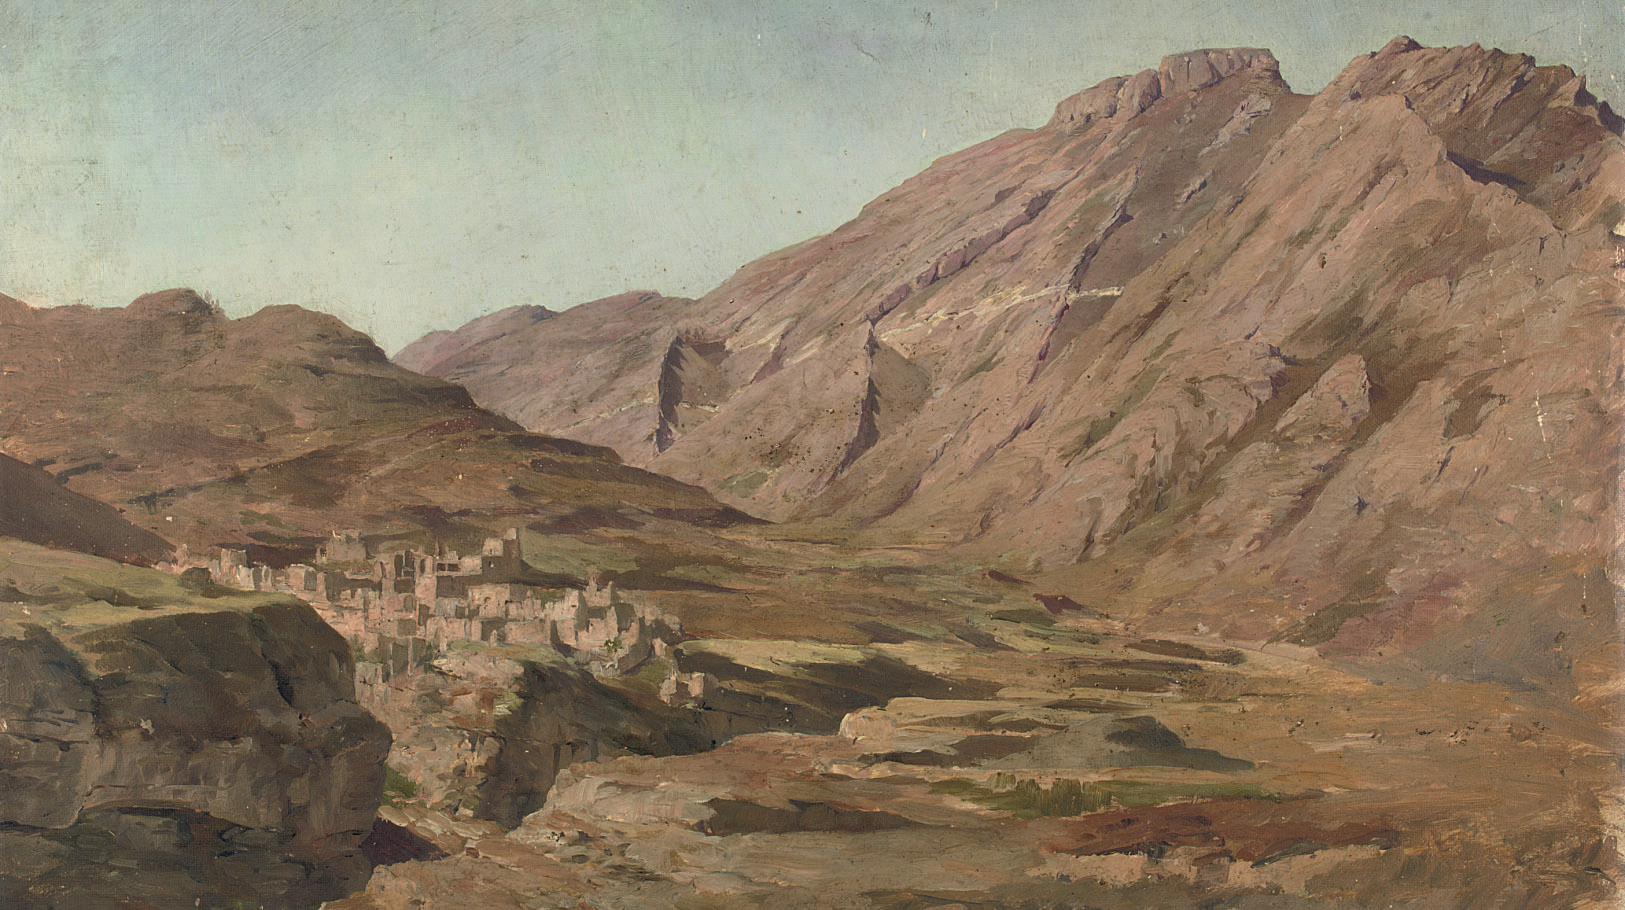 A mountain village in the Caucasus